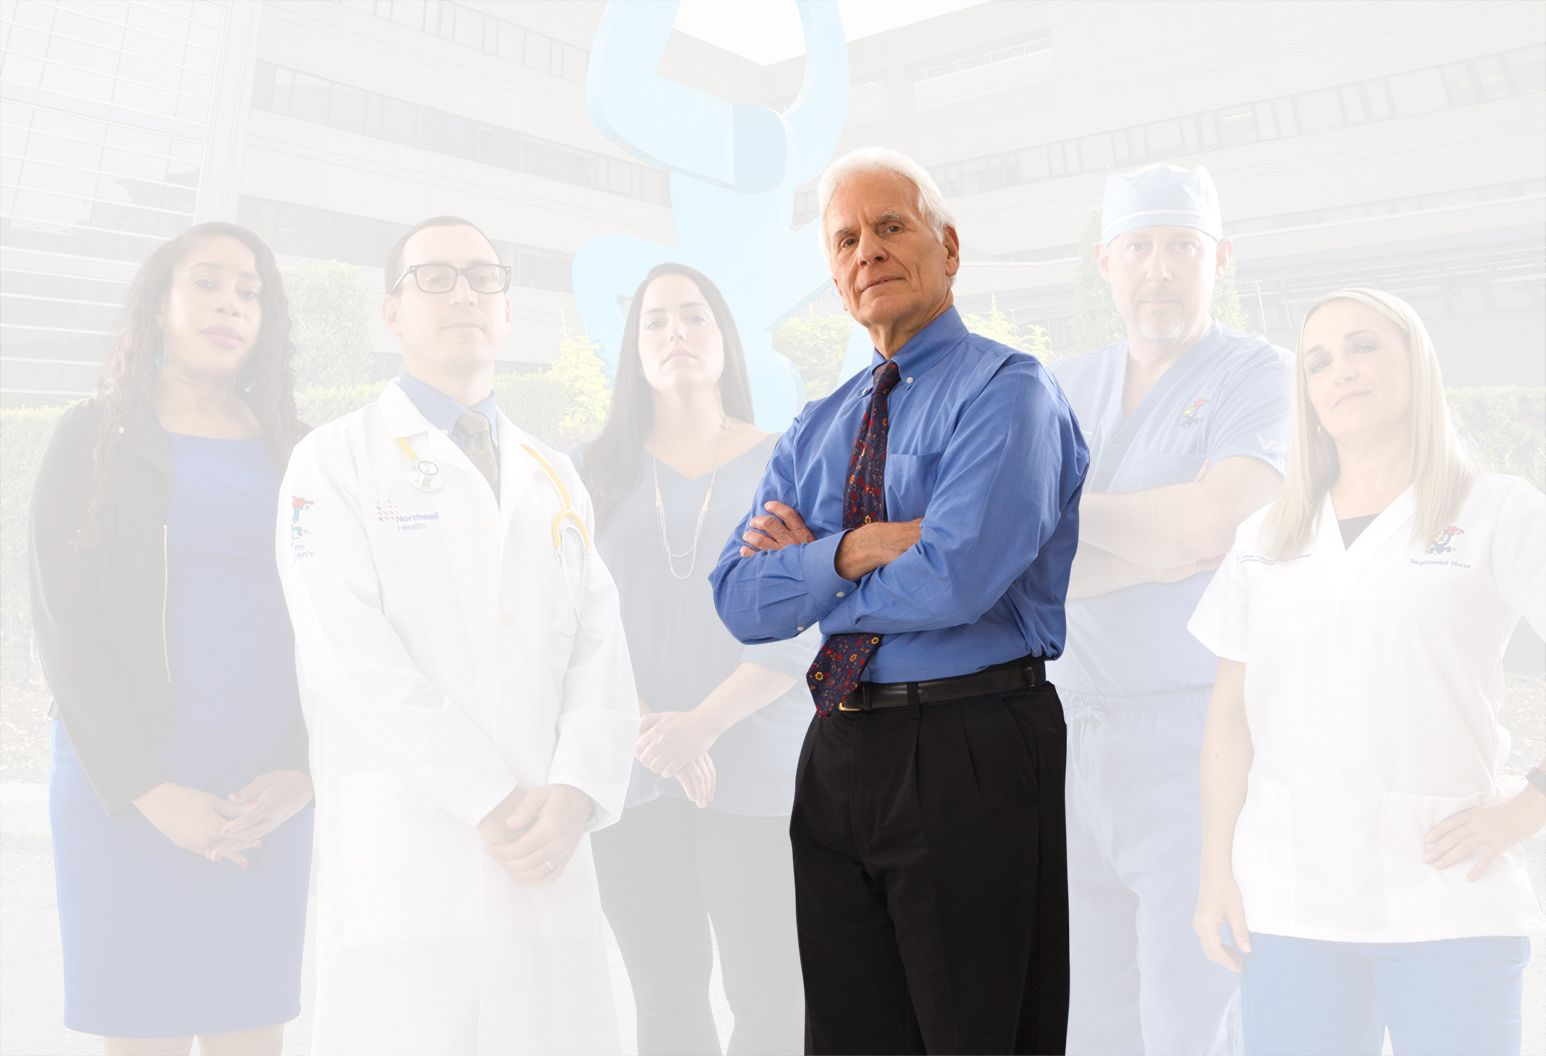 An experienced doctor separates from the rest of the team and the background. His arms are crossed heroically.